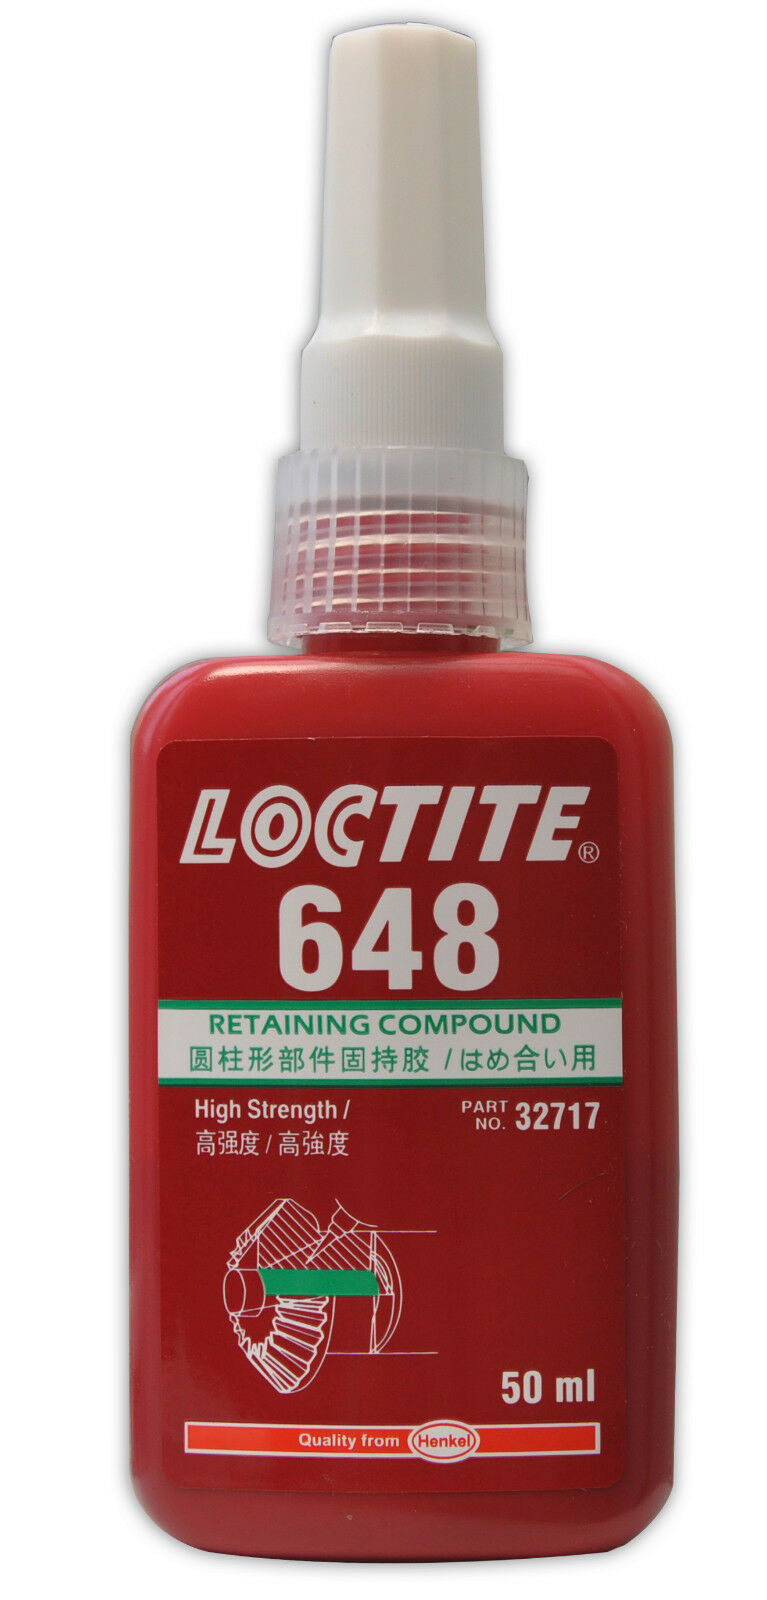 Loctite 648 Retaining Compound 50ML high strength. High temperature resistance. Adhesives & Tape